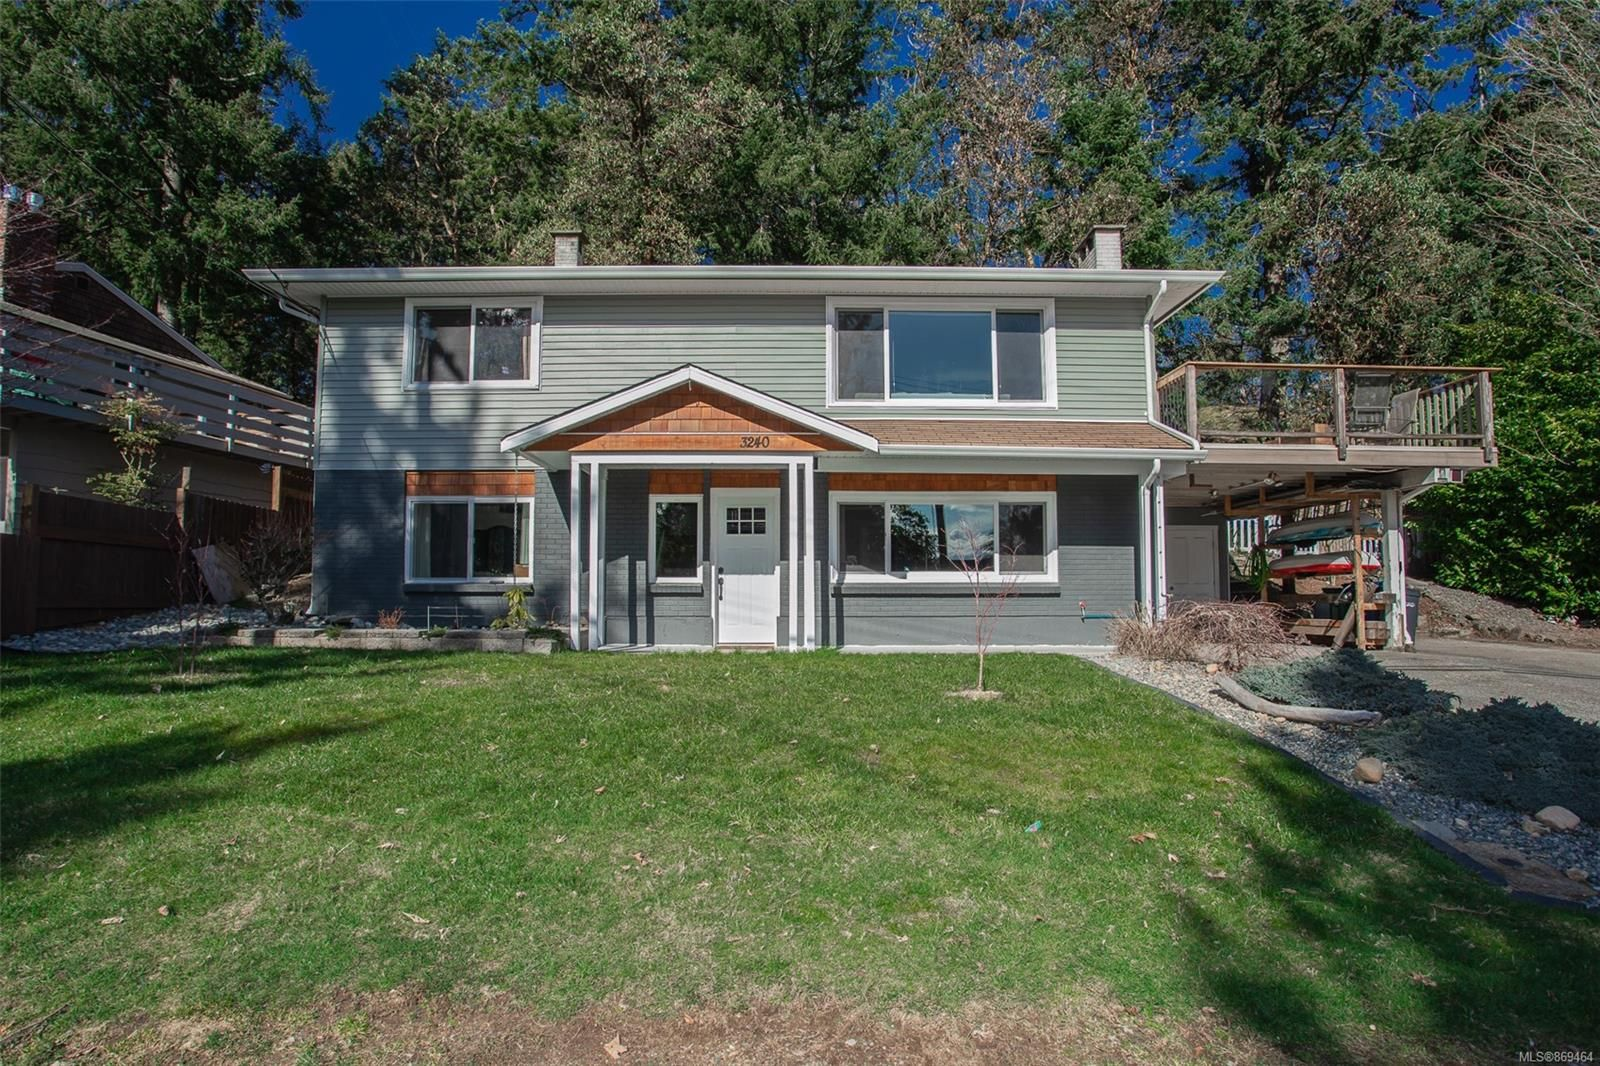 Main Photo: 3240 Crystal Pl in : Na Uplands House for sale (Nanaimo)  : MLS®# 869464